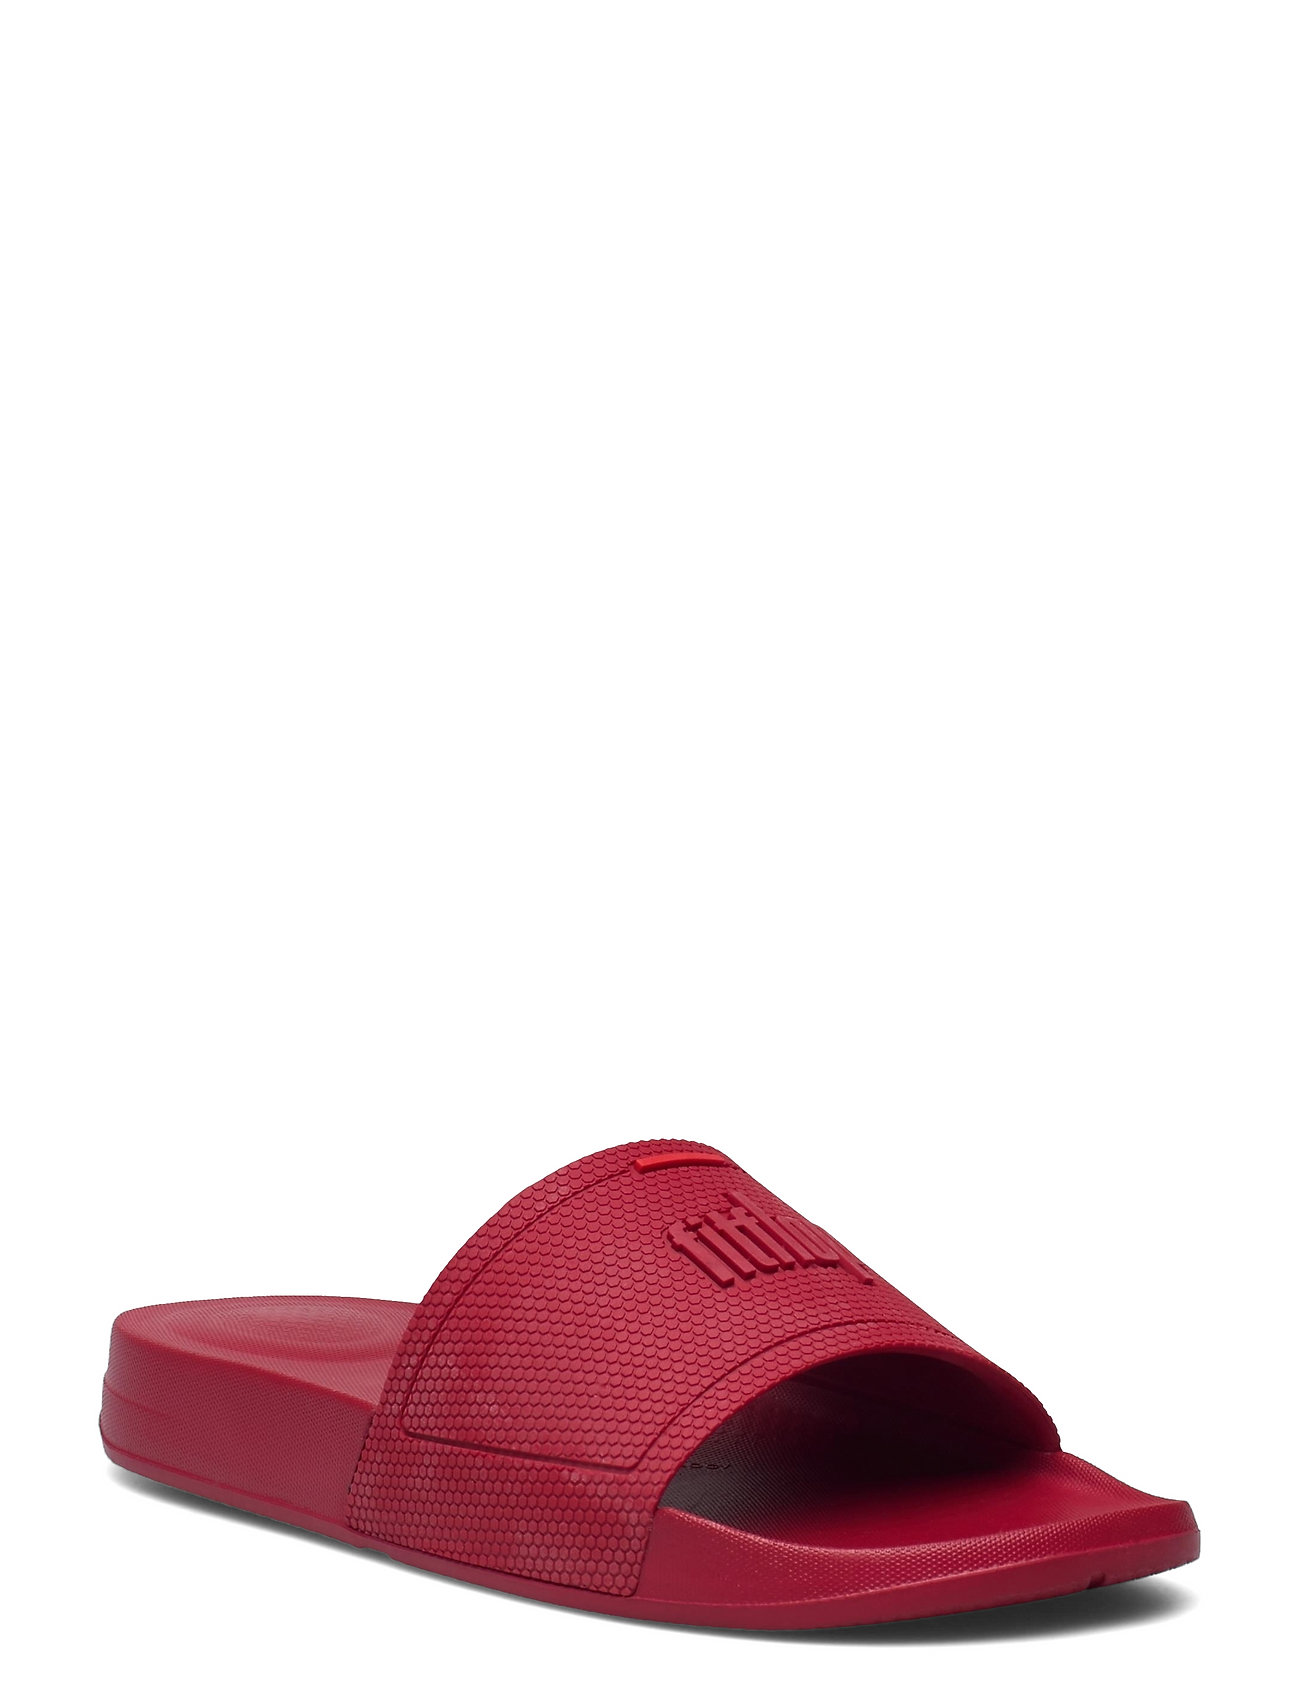 Iqushion Slides Shoes Summer Shoes Pool Sliders Rød FitFlop